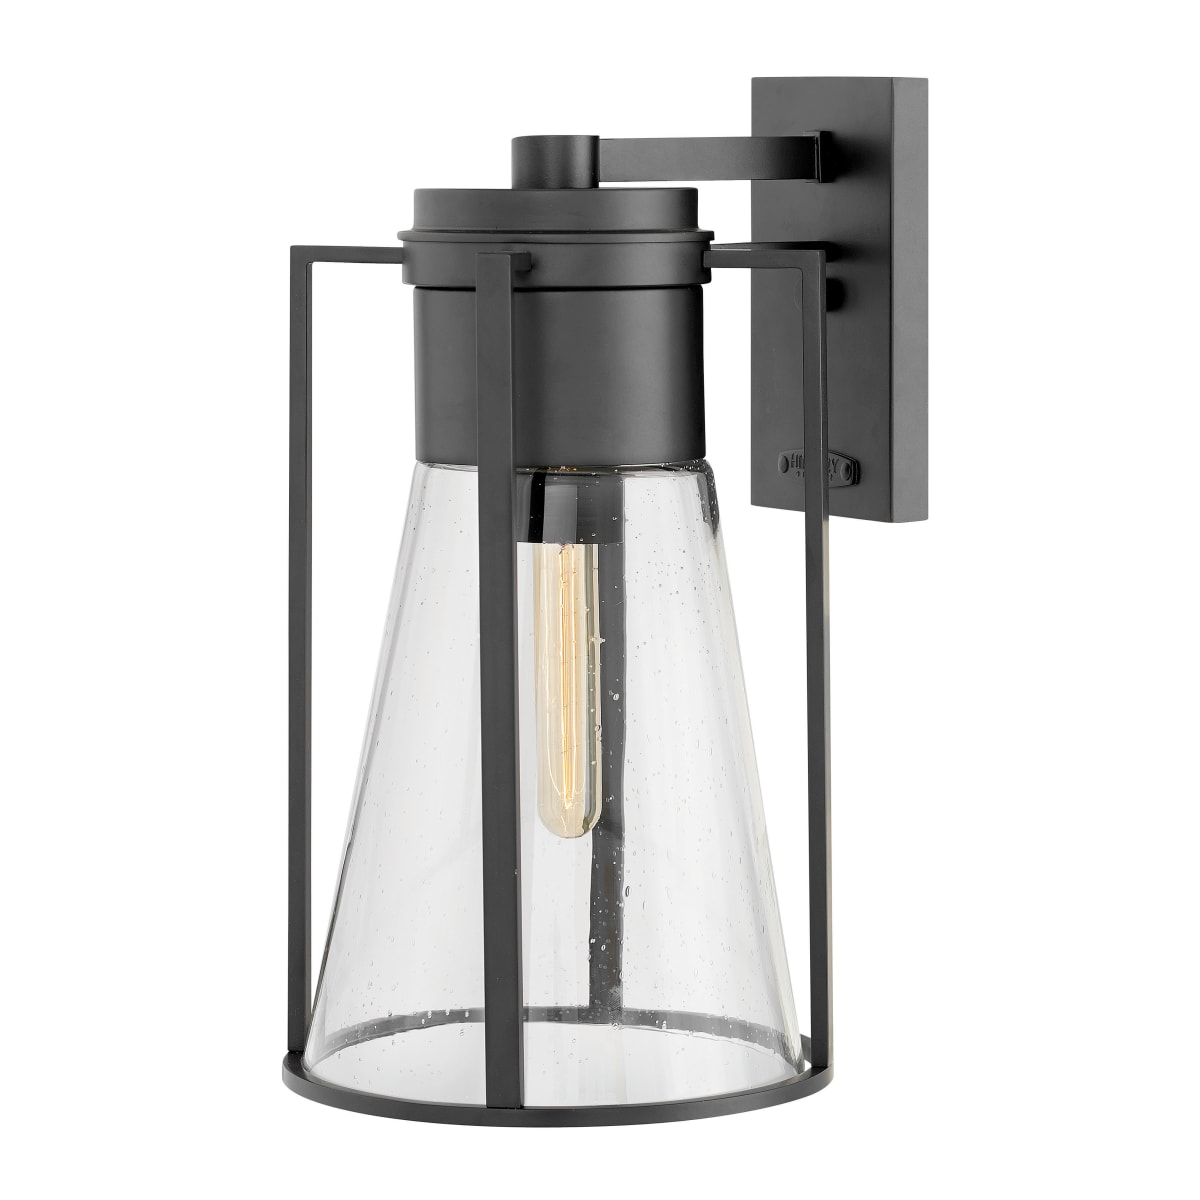 Hinkley Lighting 2825bk Black 1 Light 16 3 4 Tall Outdoor Wall Sconce With Clear Seedy Glass From The Refinery Collection Lightingshowplace Com